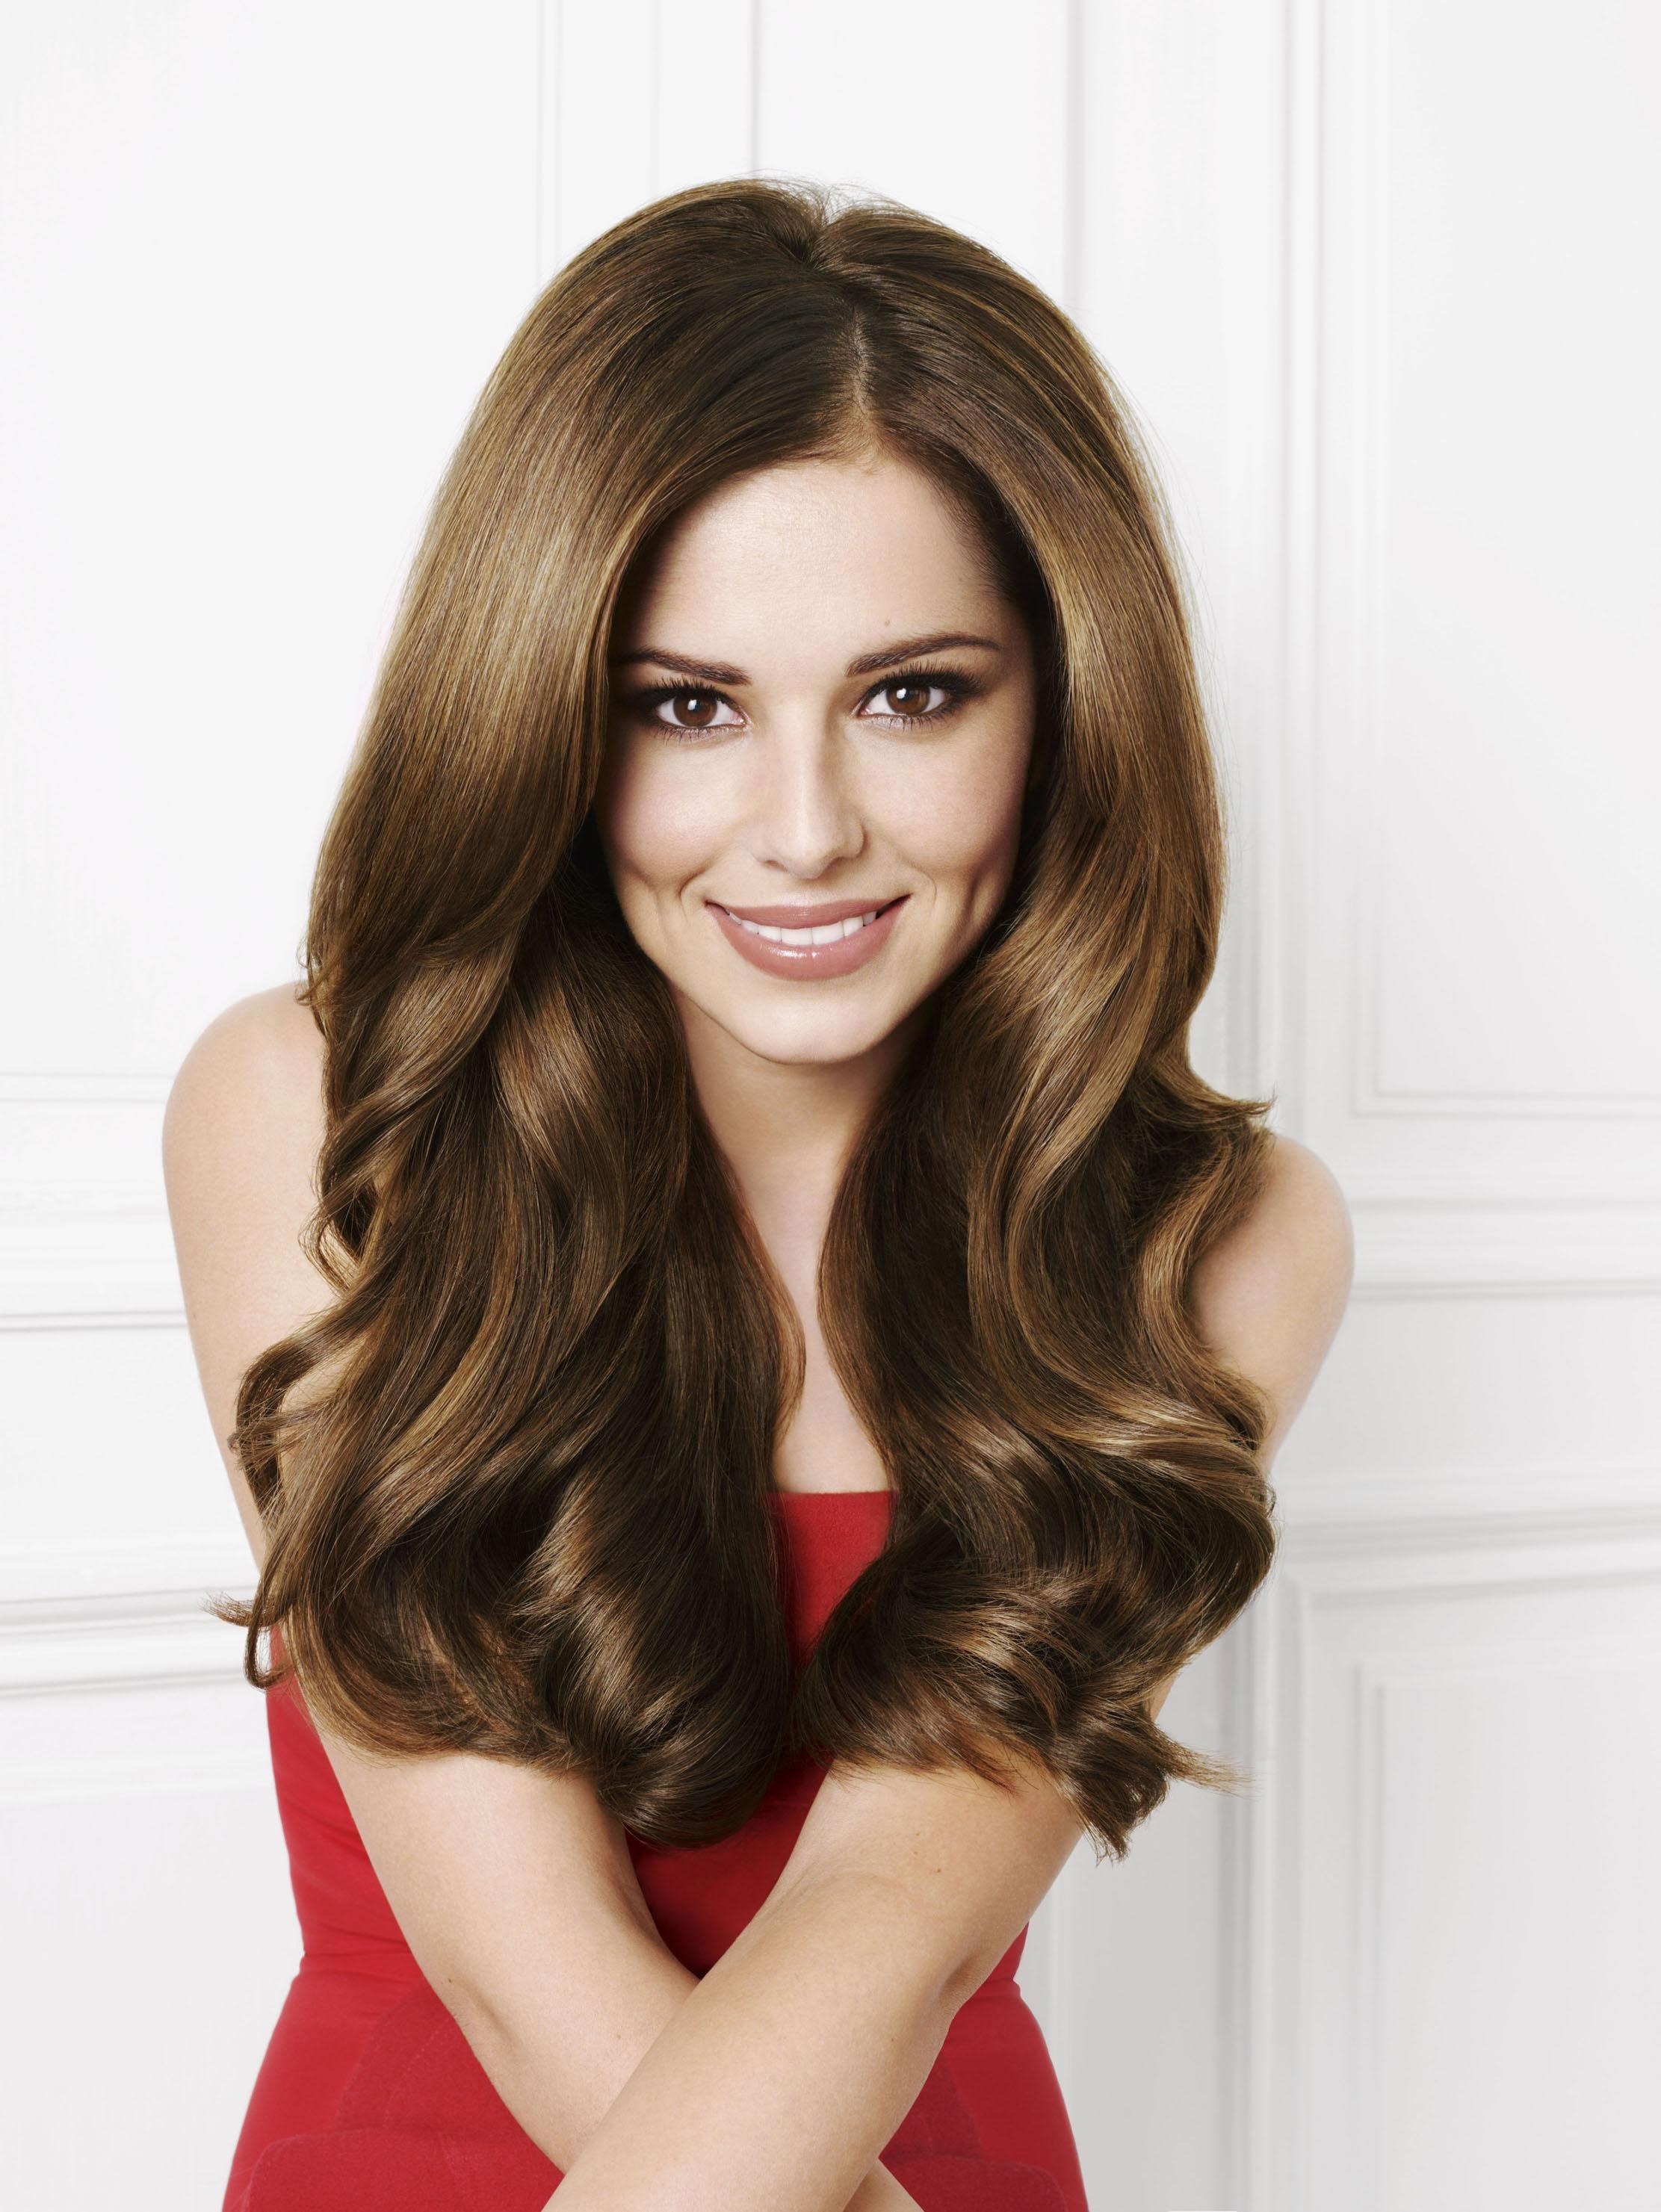 How to have Beautiful healthy hair - Women Hairstyles